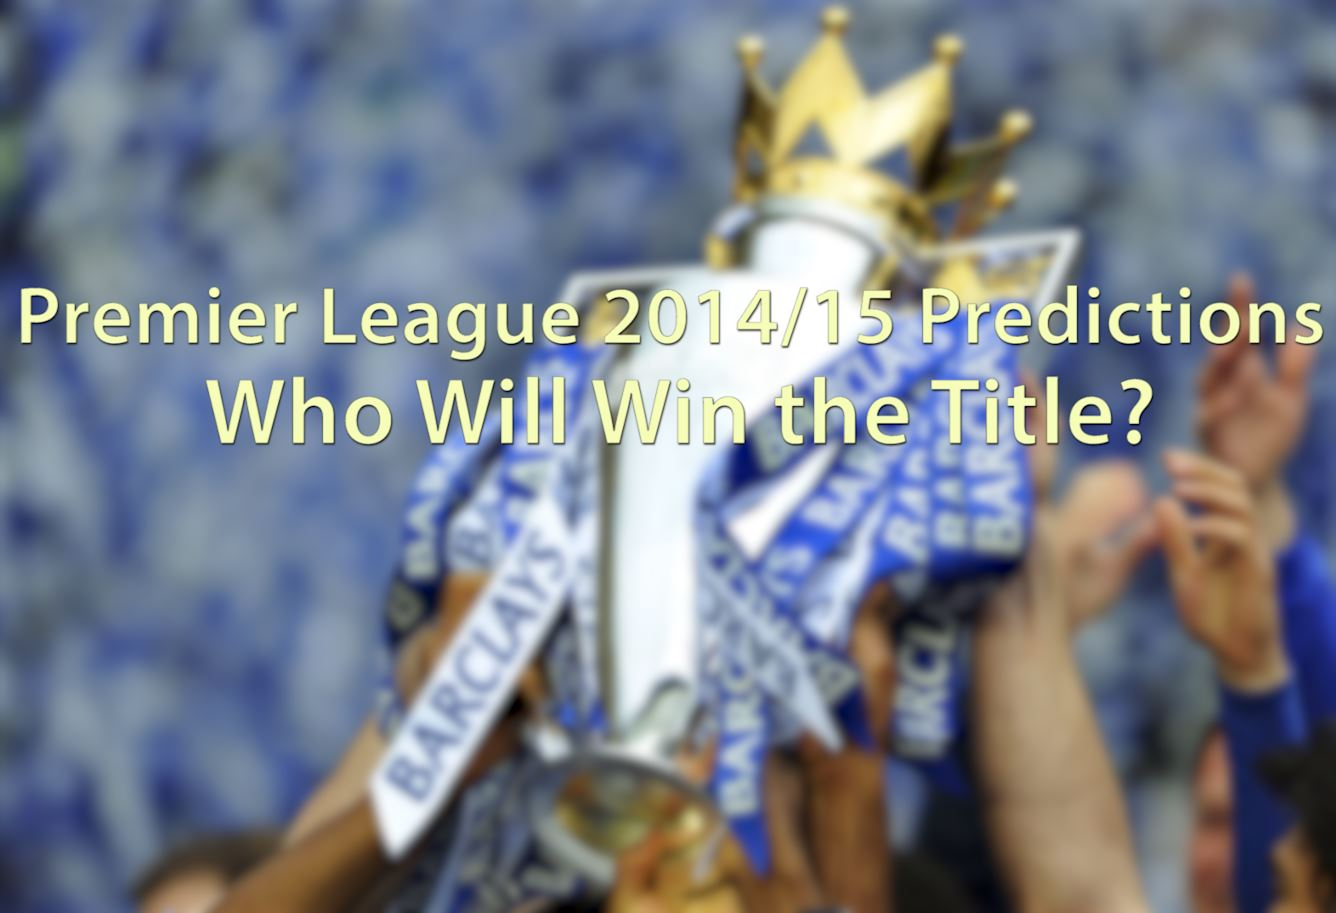 Premier League 2014/15 Predictions: Who Will Win the Title?